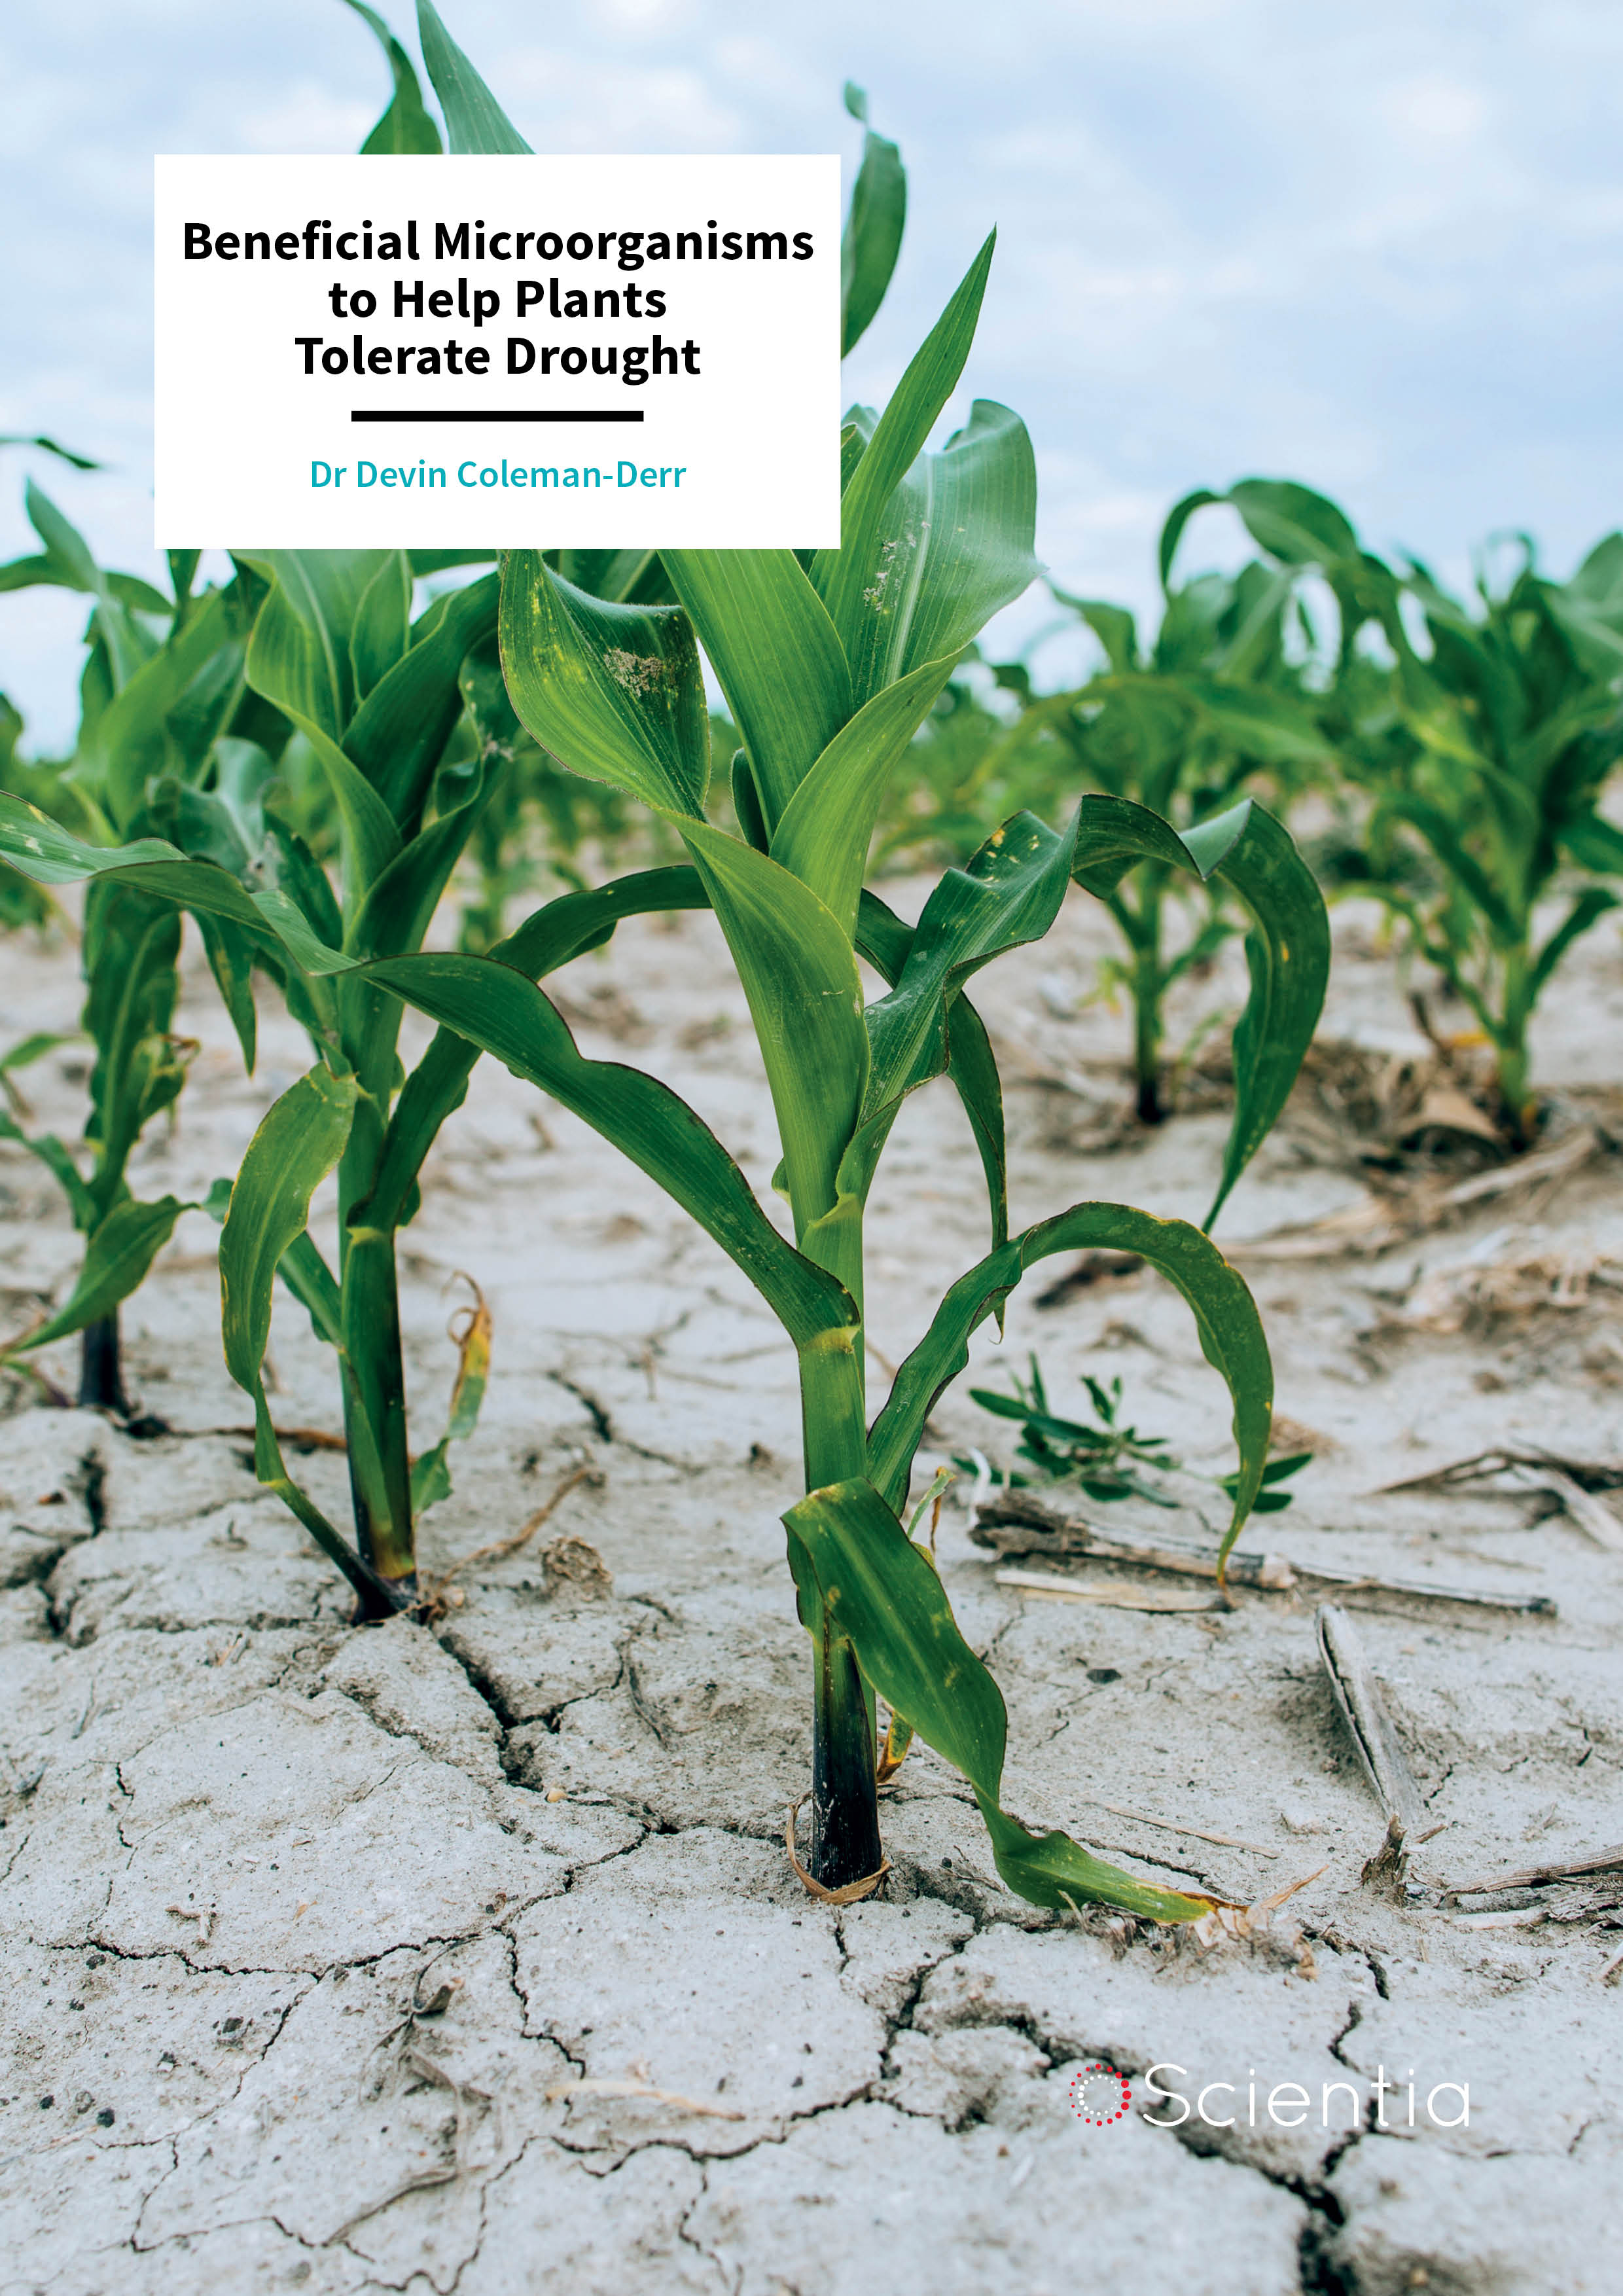 Dr Devin Coleman-Derr – Beneficial Microorganisms to Help Plants Tolerate Drought